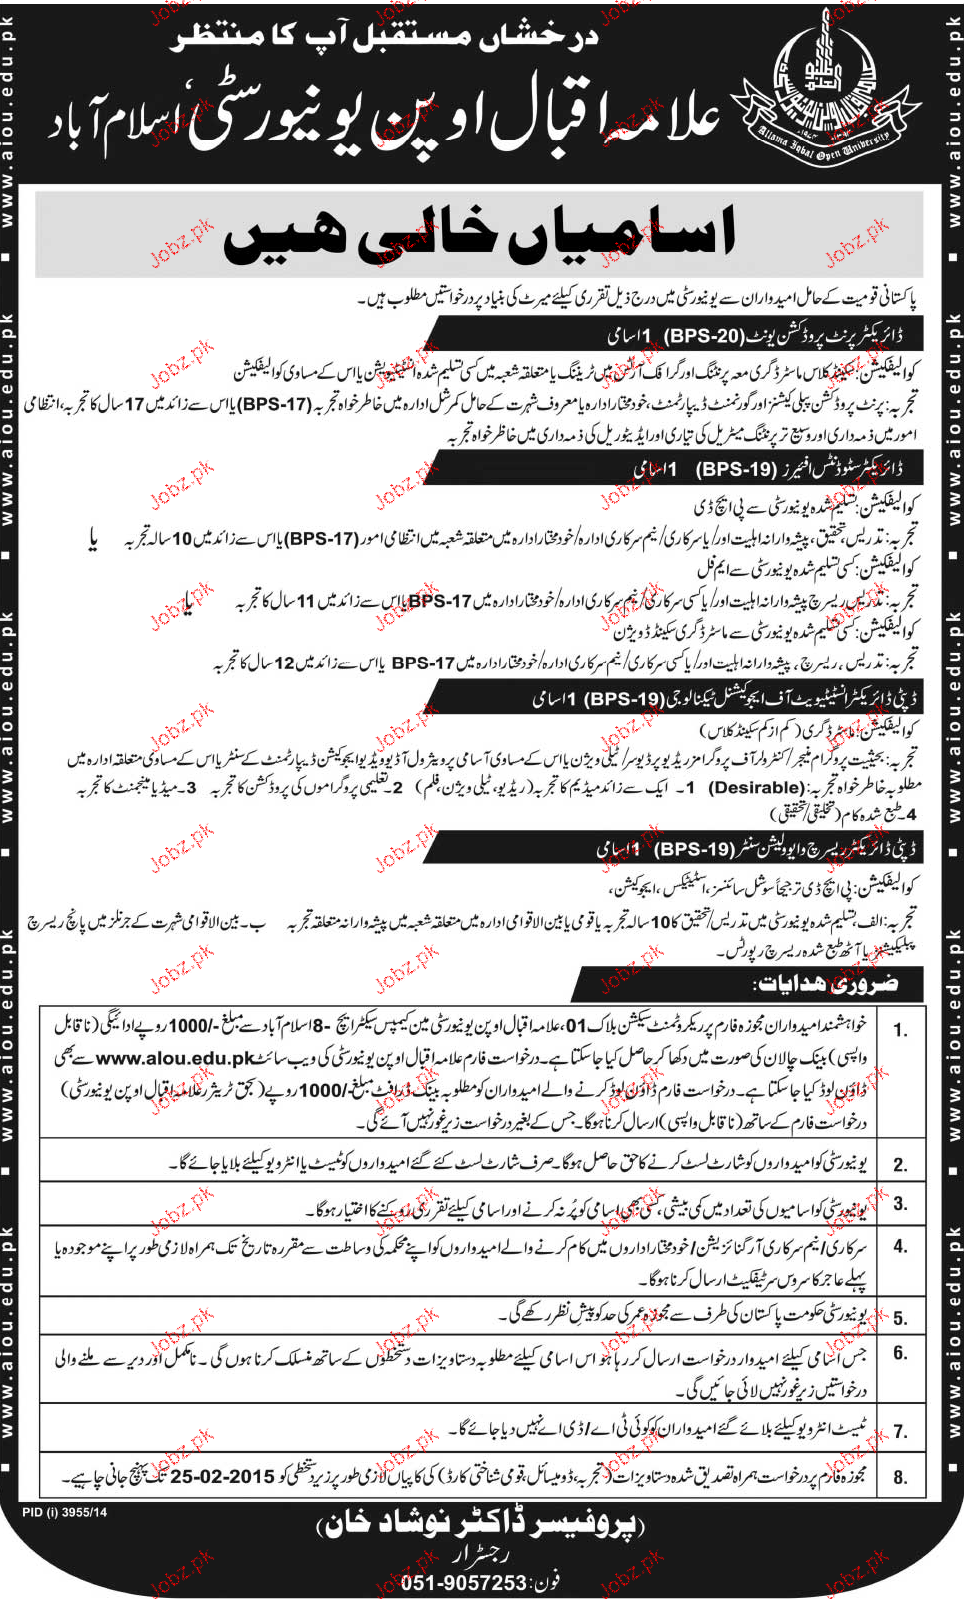 Director Print Production, Director Students Affairs Wanted